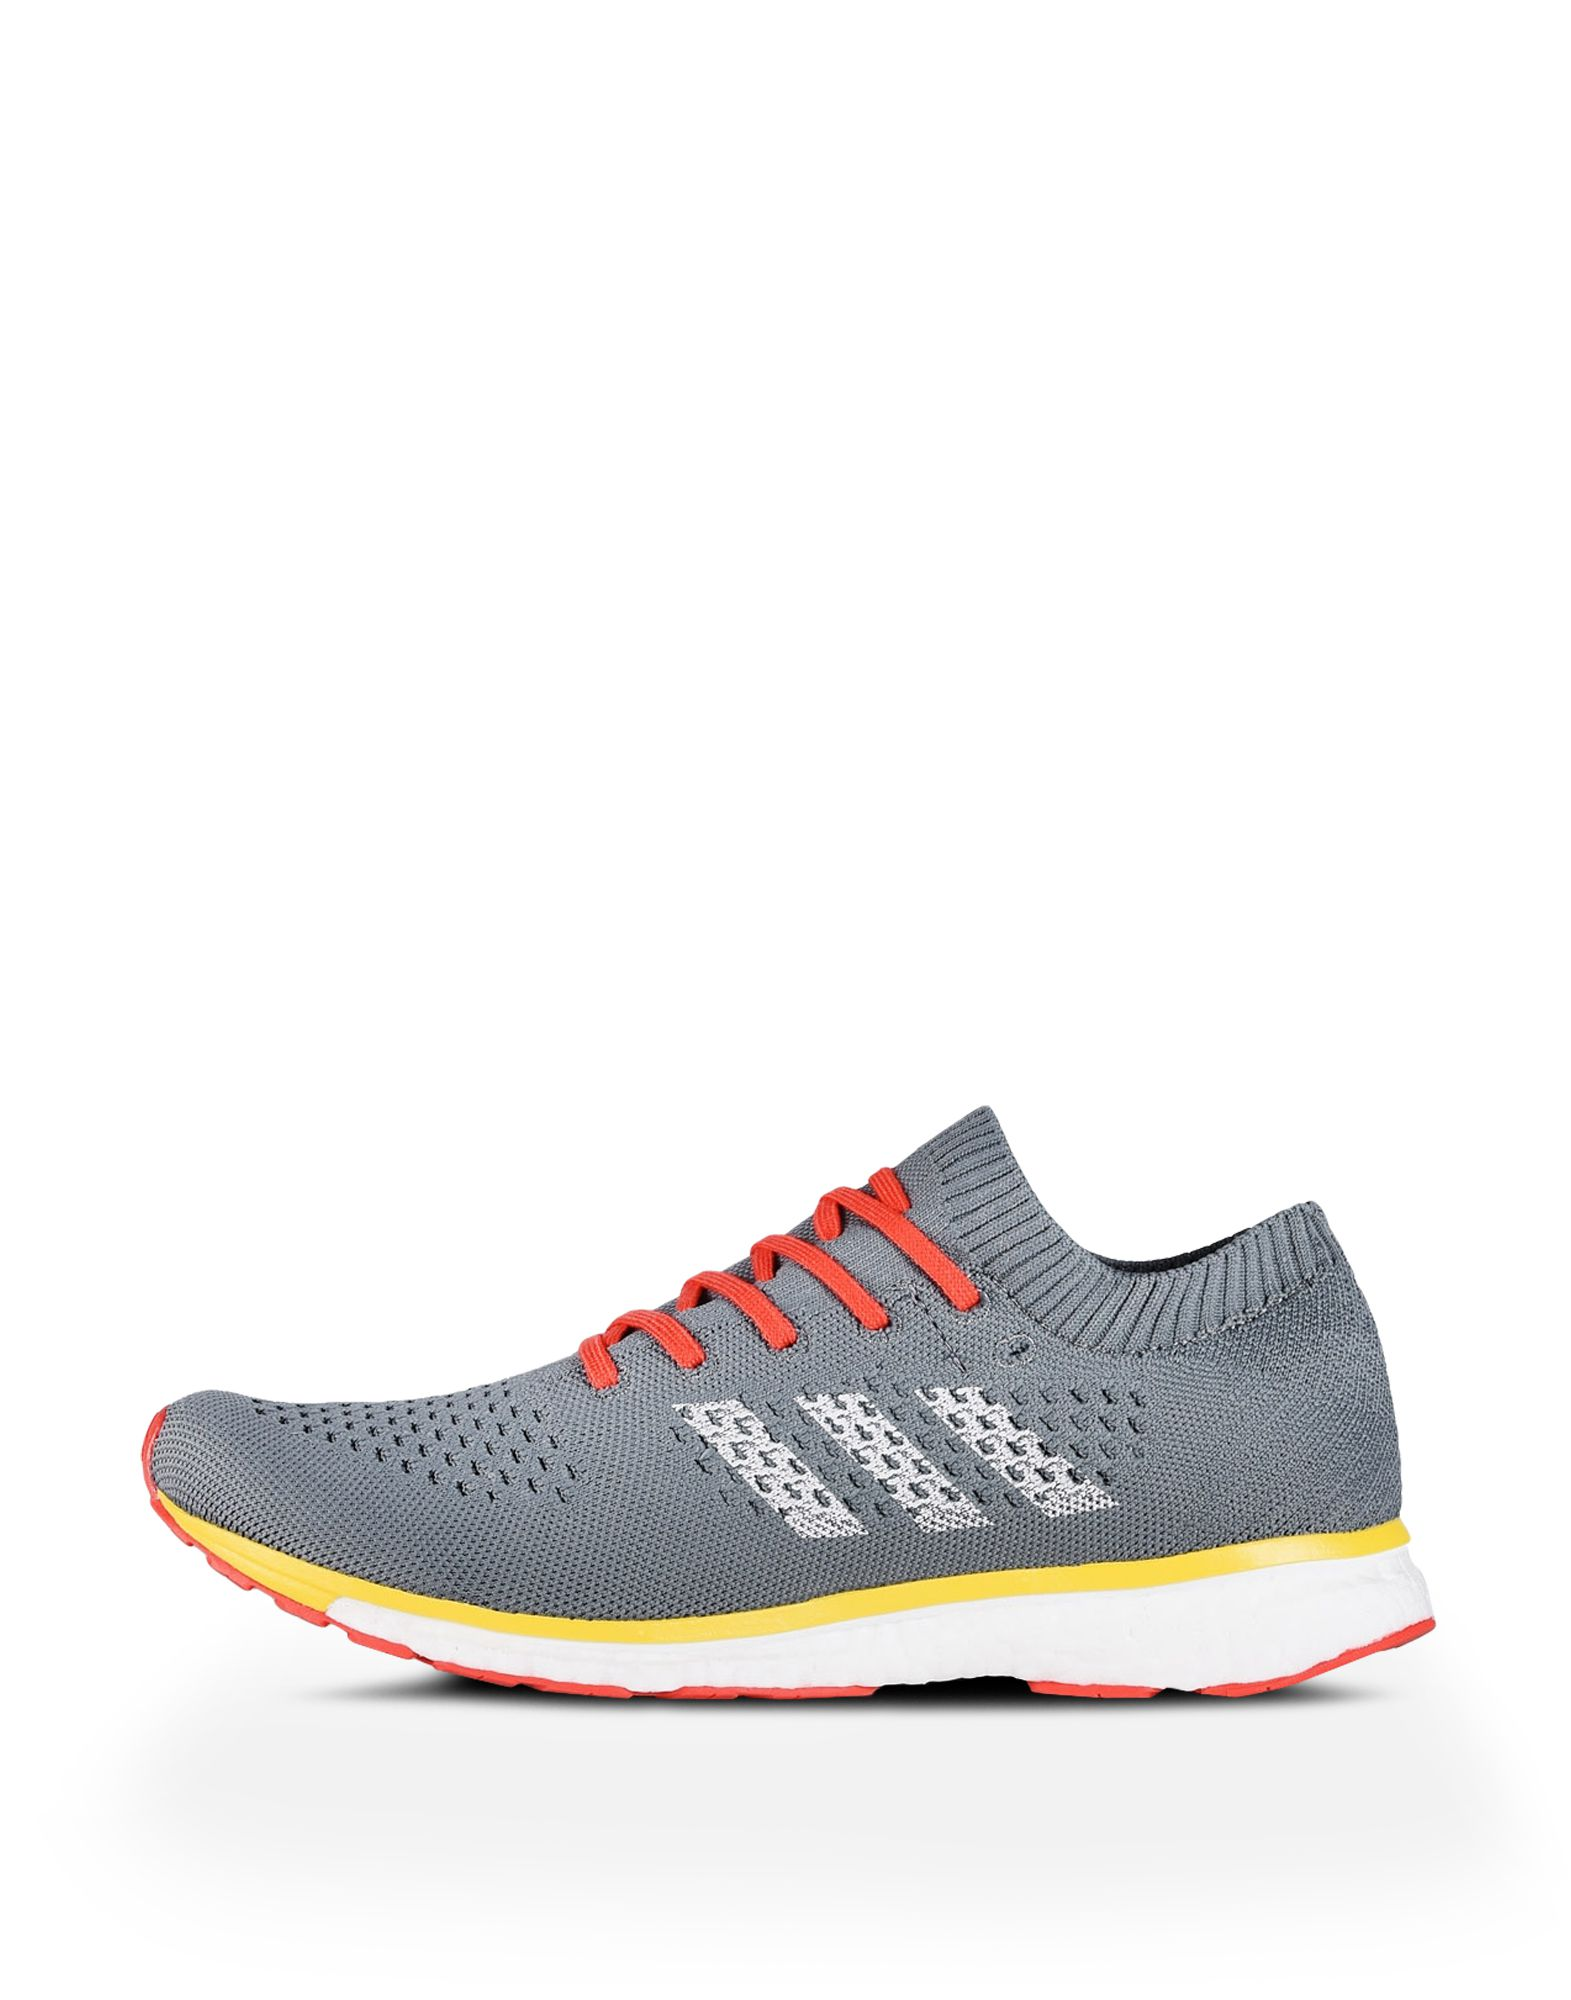 new concept bfd12 ebf6a ... ADIDAS by KOLOR ADIZERO PRIME BOOST BY KOLOR Sneakers Herren f ...